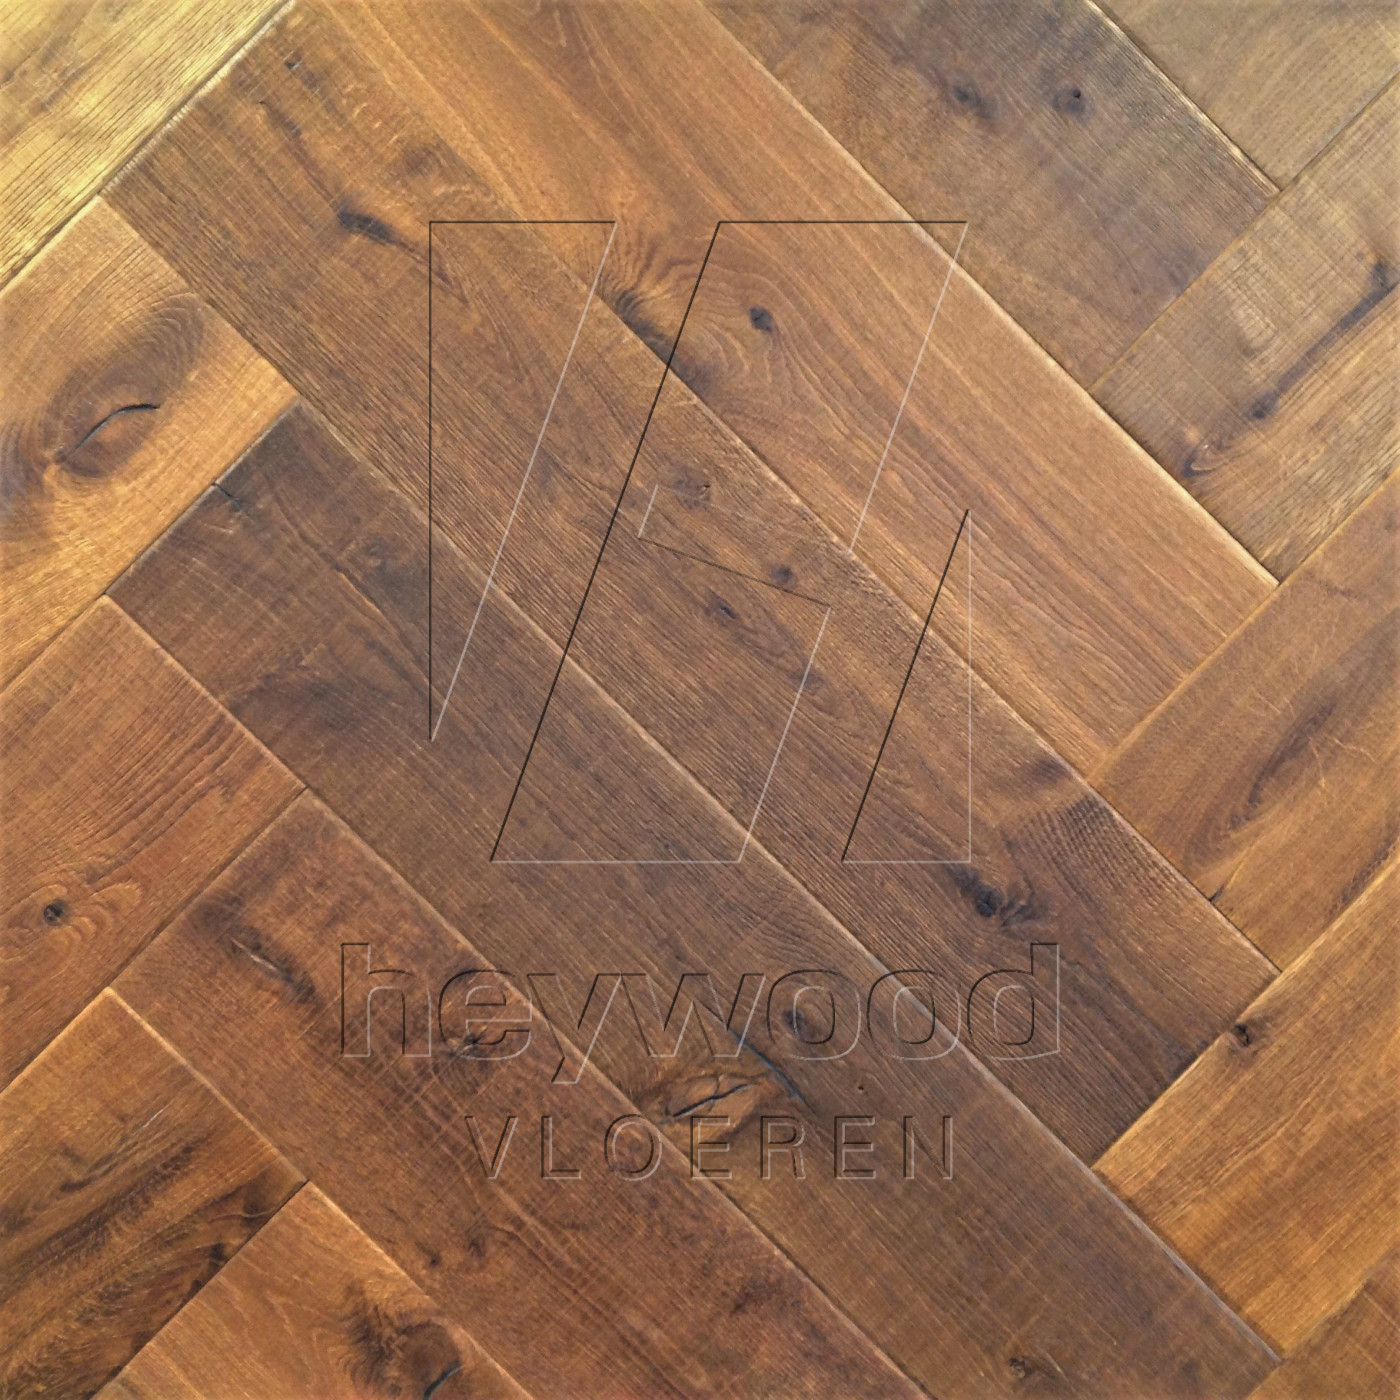 Knotting Hill Herringbone 'Galicia' in Herringbone of Pattern & Panel Floors